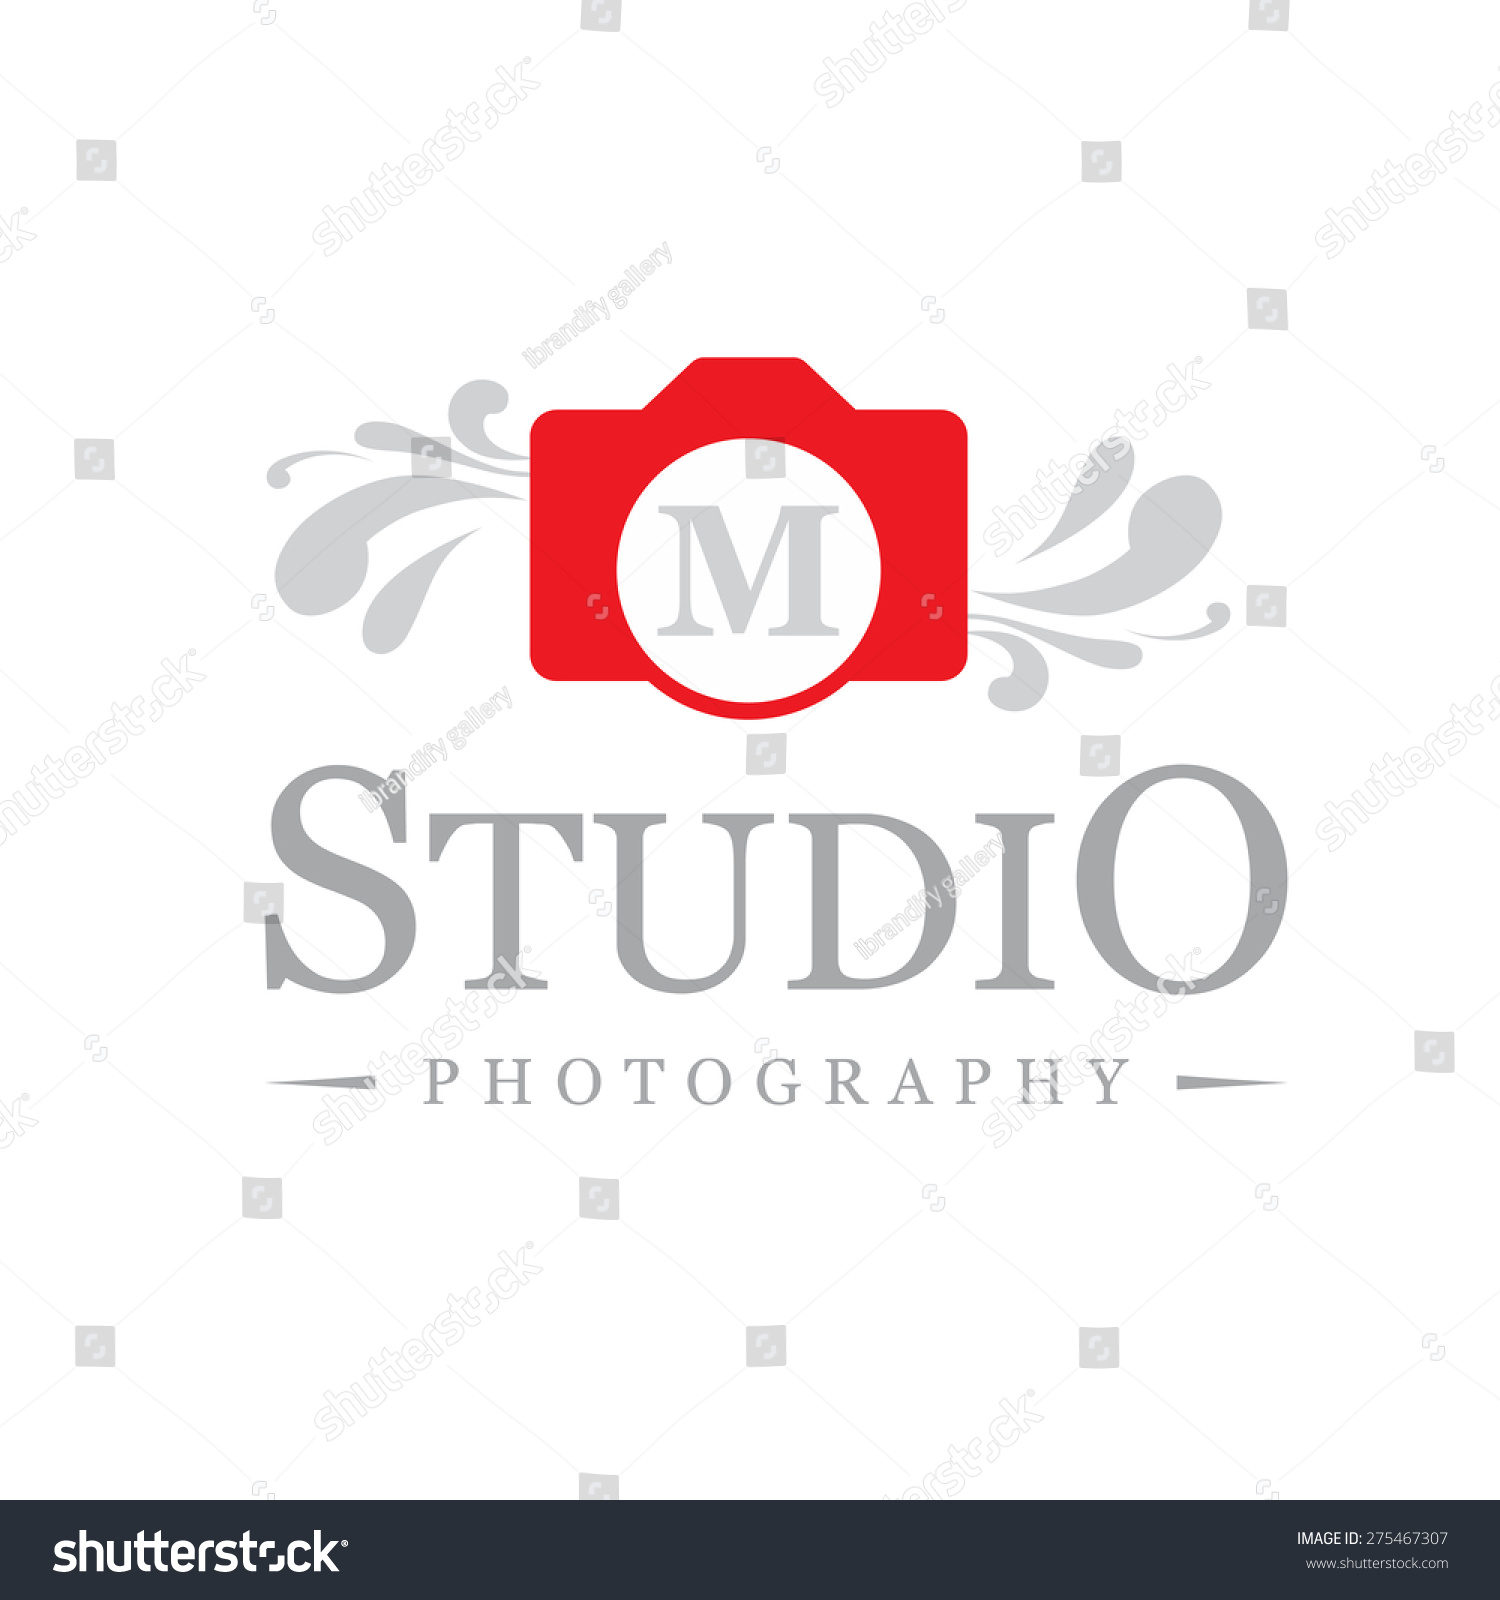 Letter M Logo , Creative Red Camera Symbol Floral ...